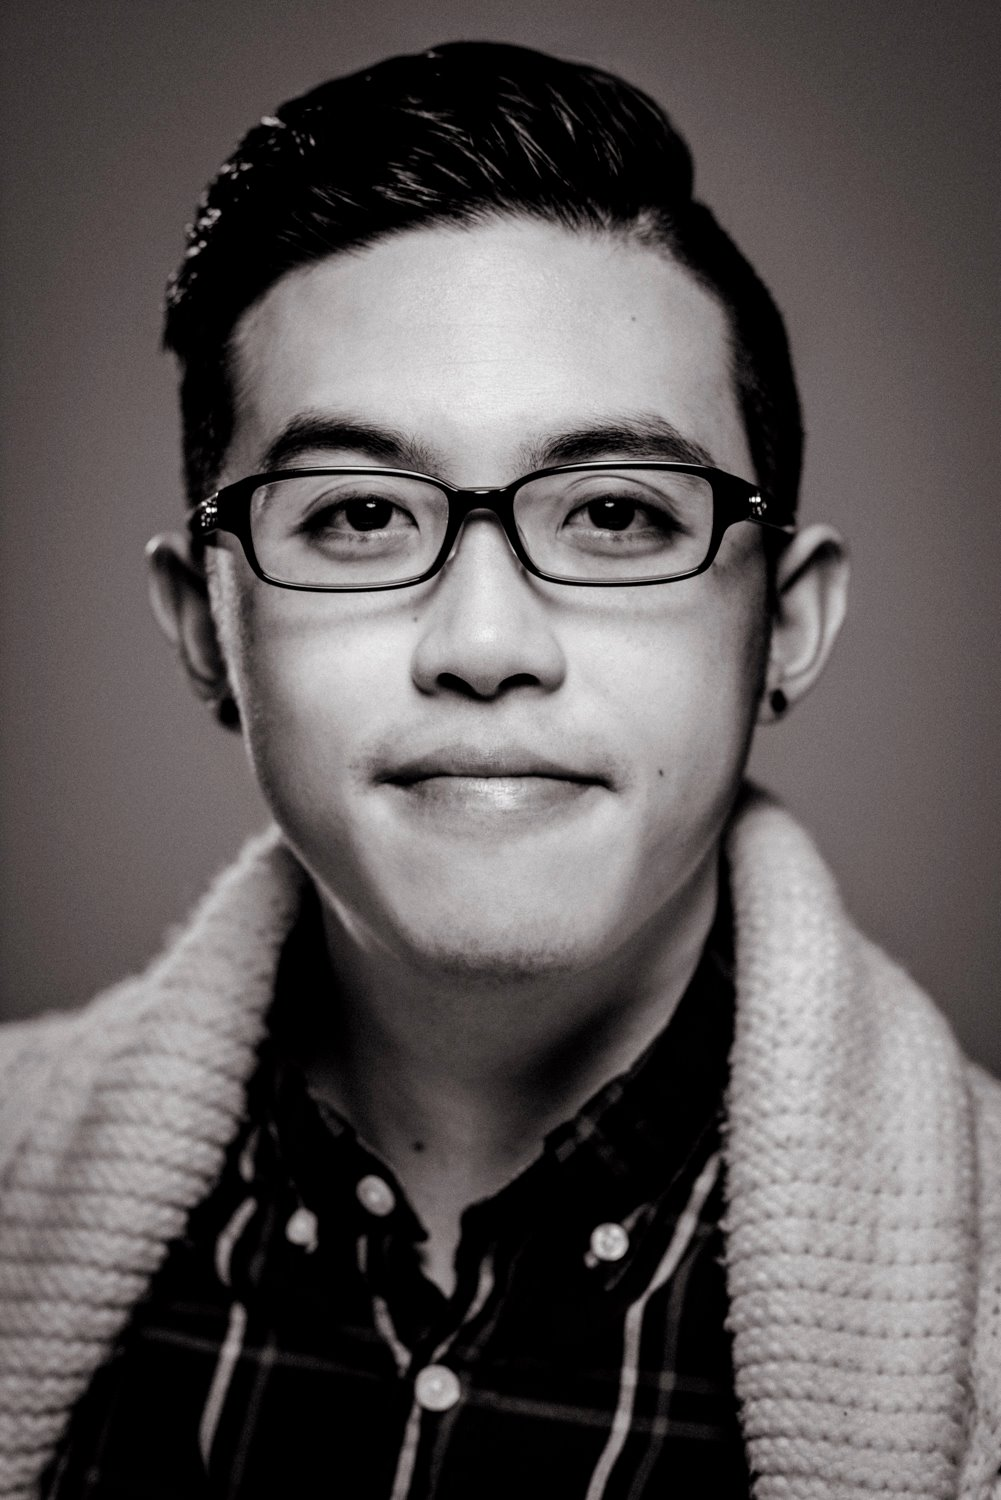 A black and white portrait with myself standing in a white knit cardigan and plaid shirt.